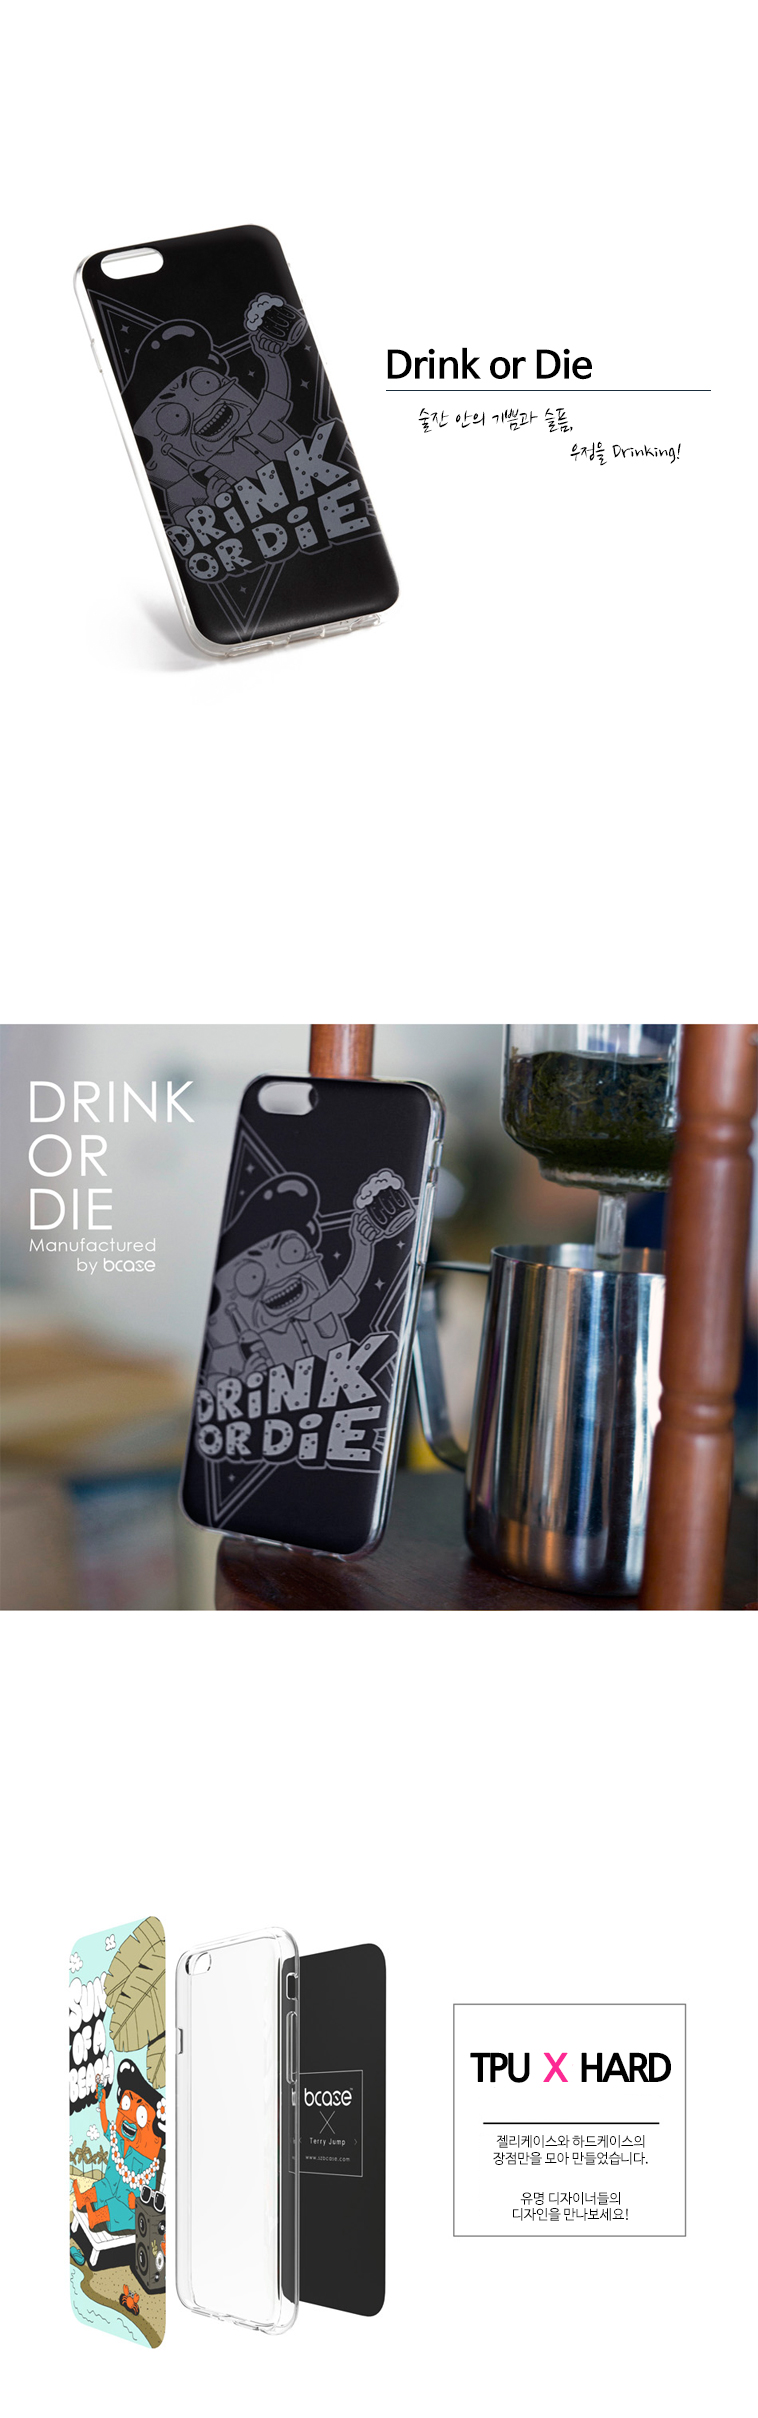 [ BISKET ] BCASE iPhone 6 6 艺术+ CaseDrink 或死